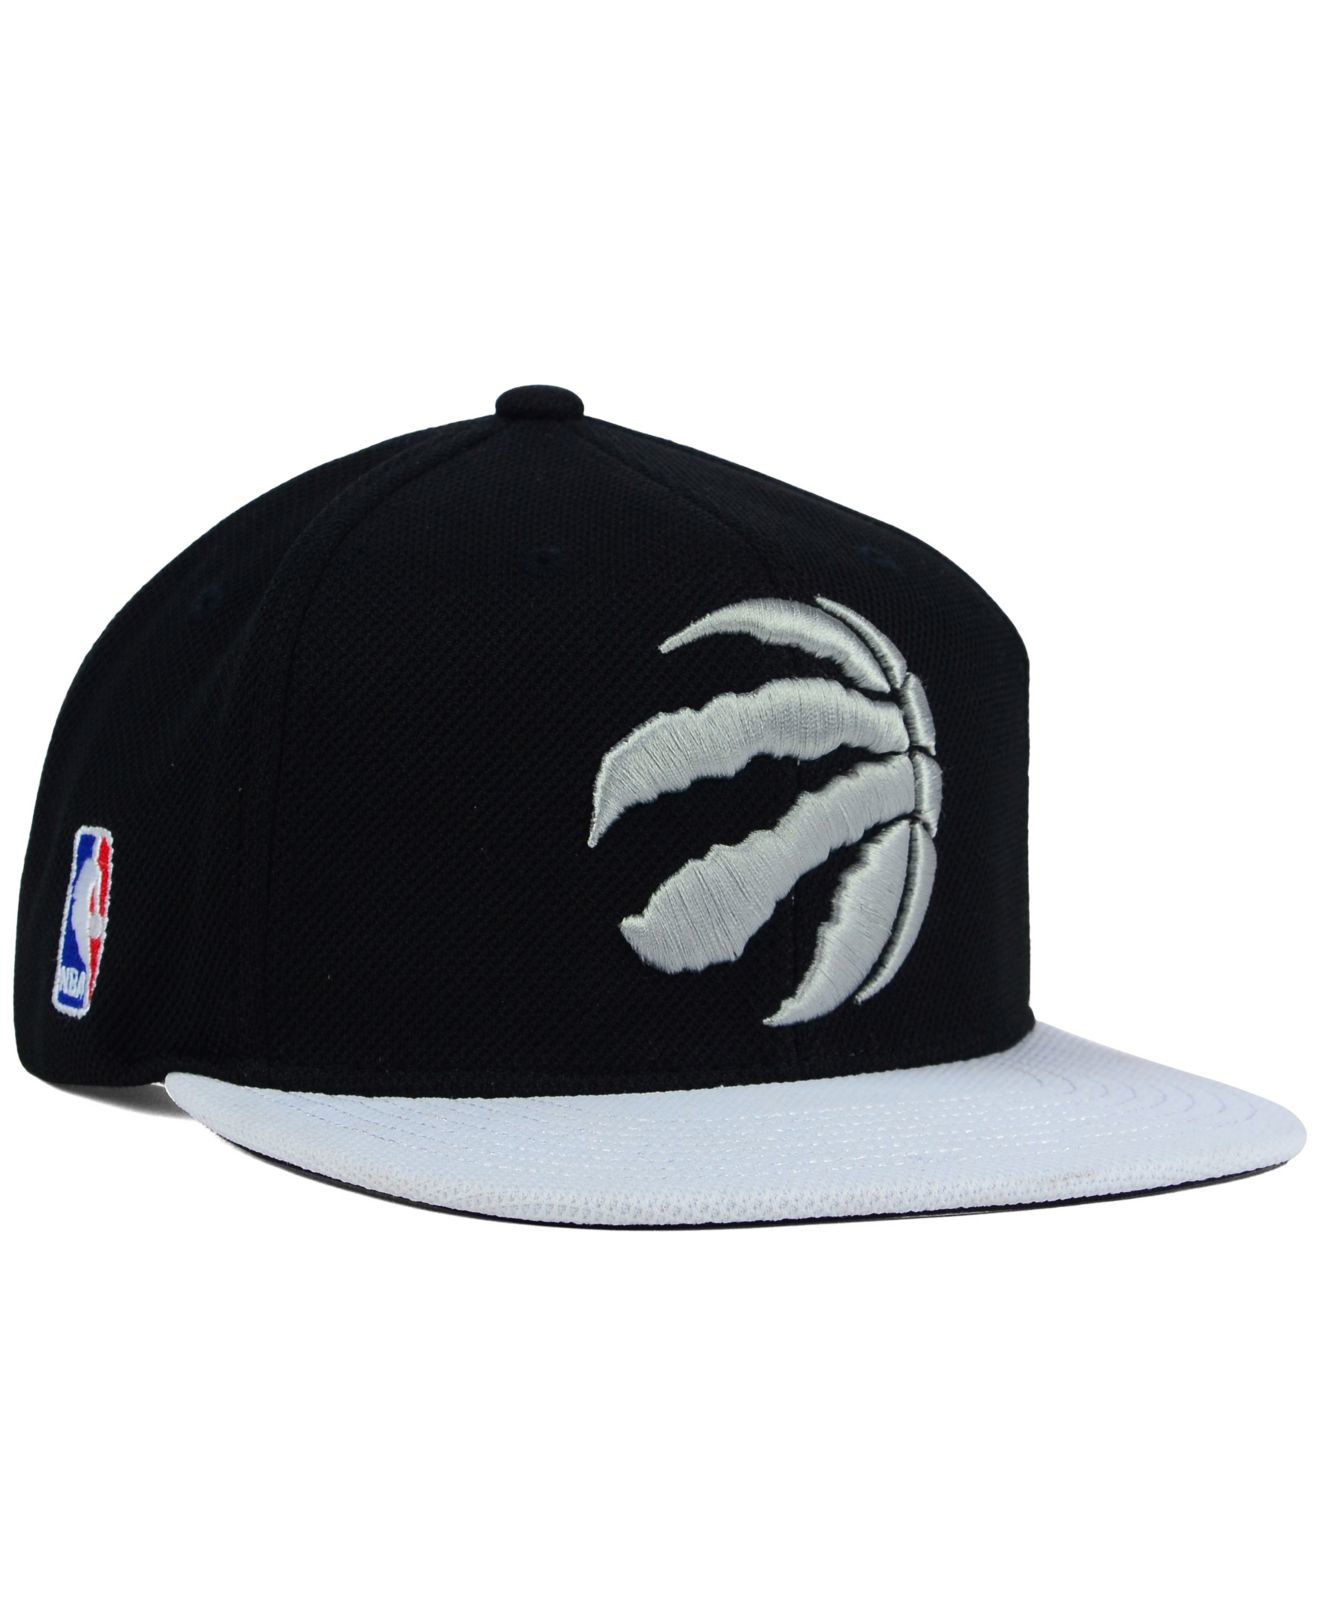 cheapest image is loading cleveland cavaliers nba eastern conference  champions adidas hat 83243 9c04f  where can i buy lyst adidas toronto  raptors 2015 nba ... 25c07ca408b3